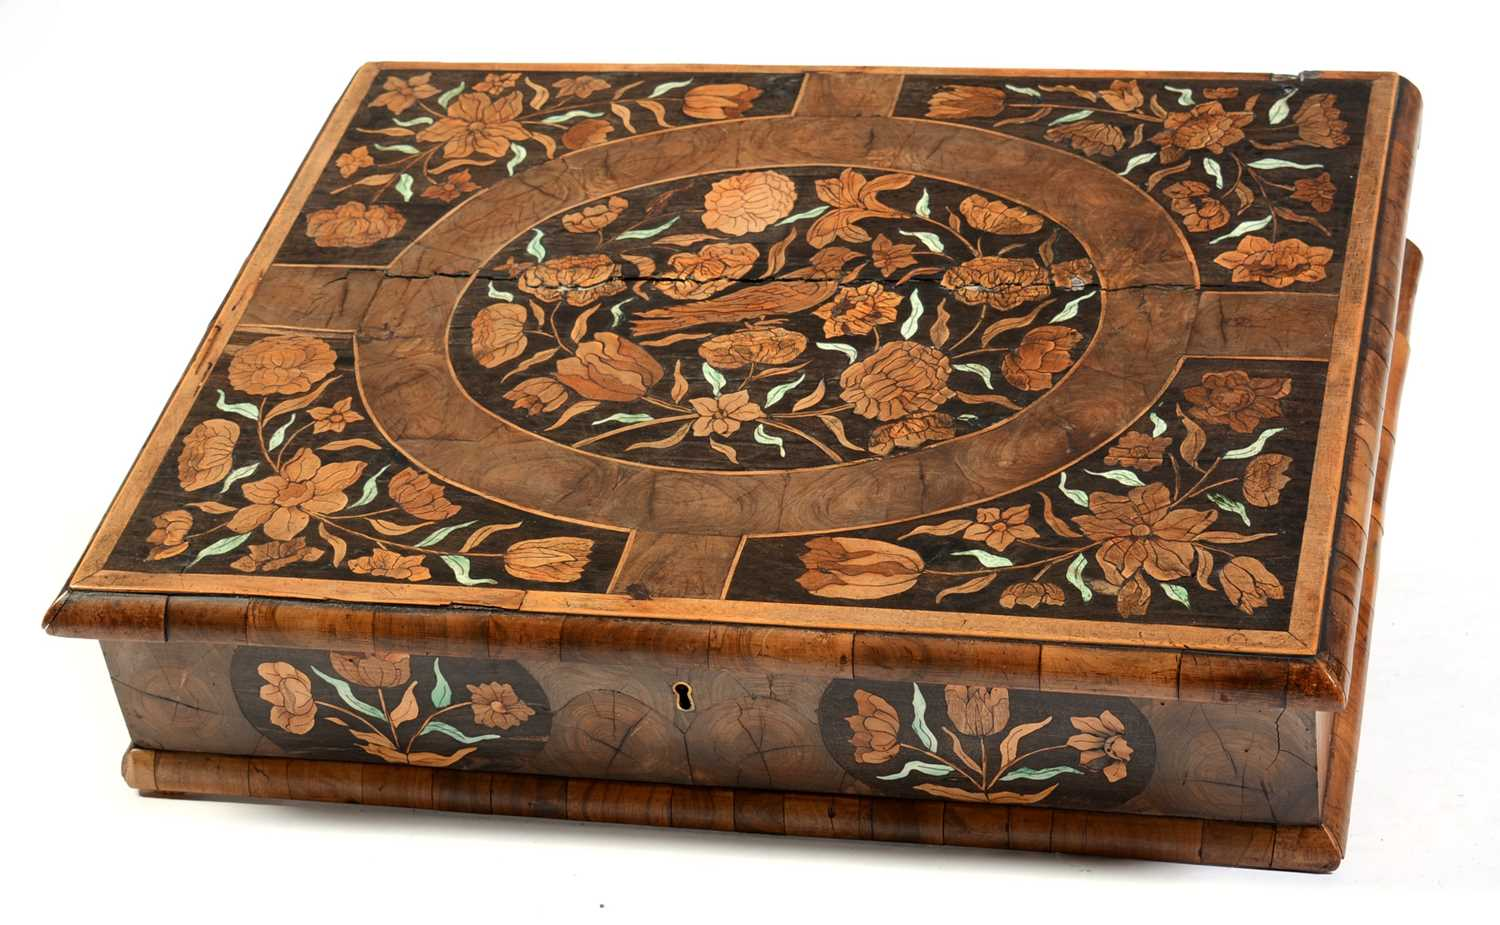 18th Century Dutch marquetry and oyster veneered lace box